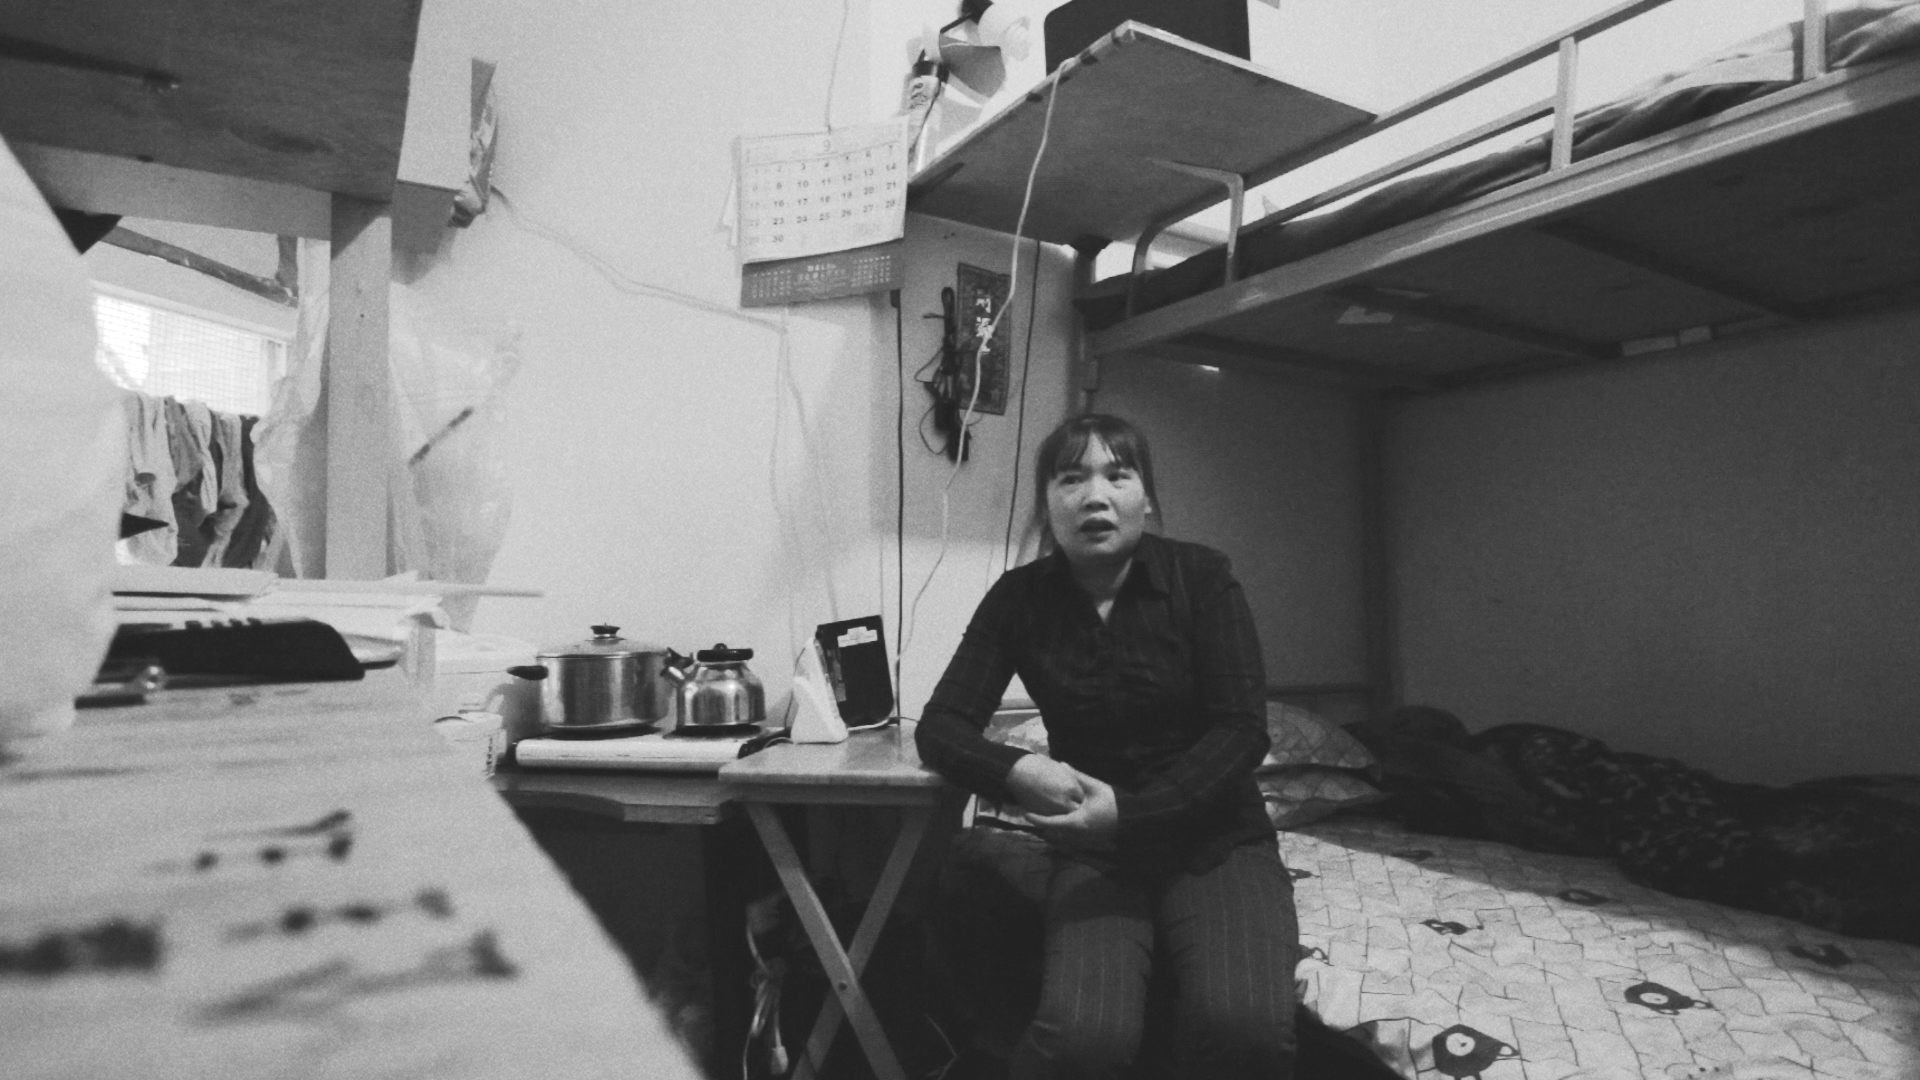 LONI DING AWARD WINNER 'HOME IS A HOTEL'